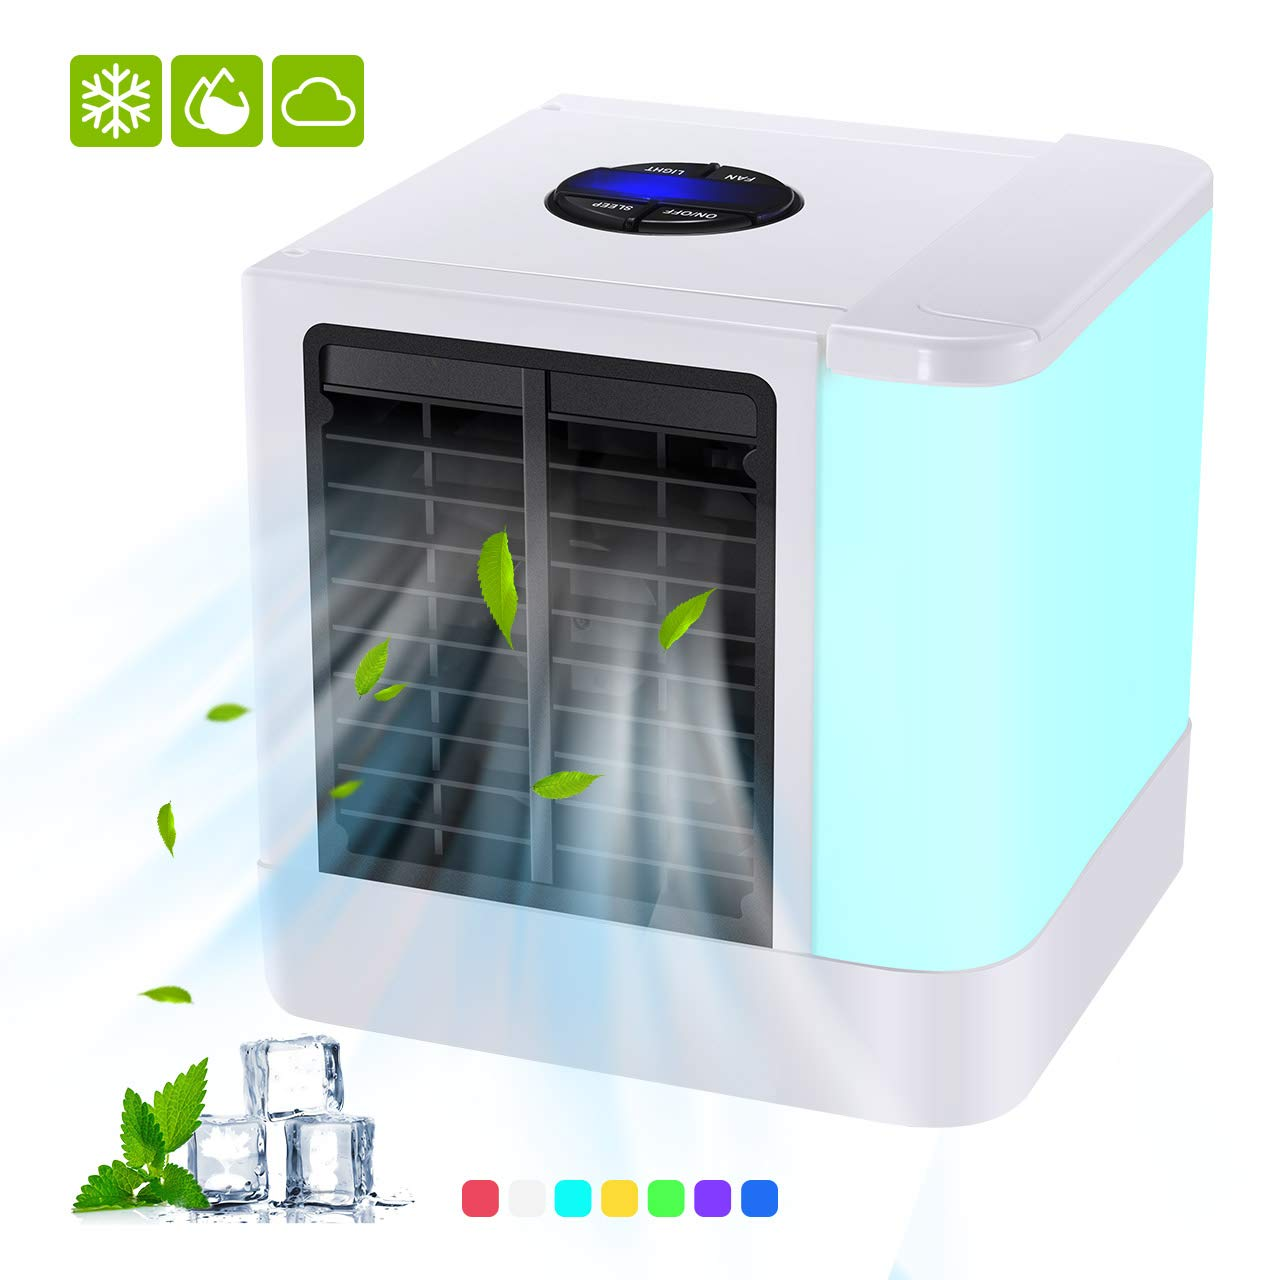 Portable Air Cooler, 3 in 1 Mini Personal Space Air Cooler, USB Powered Desktop Evaporative Air Cooler Humidifier and Purifier, 3 Speeds and 7 Colors LED Light for Office, Home and Outdoor Travel TOPELEK